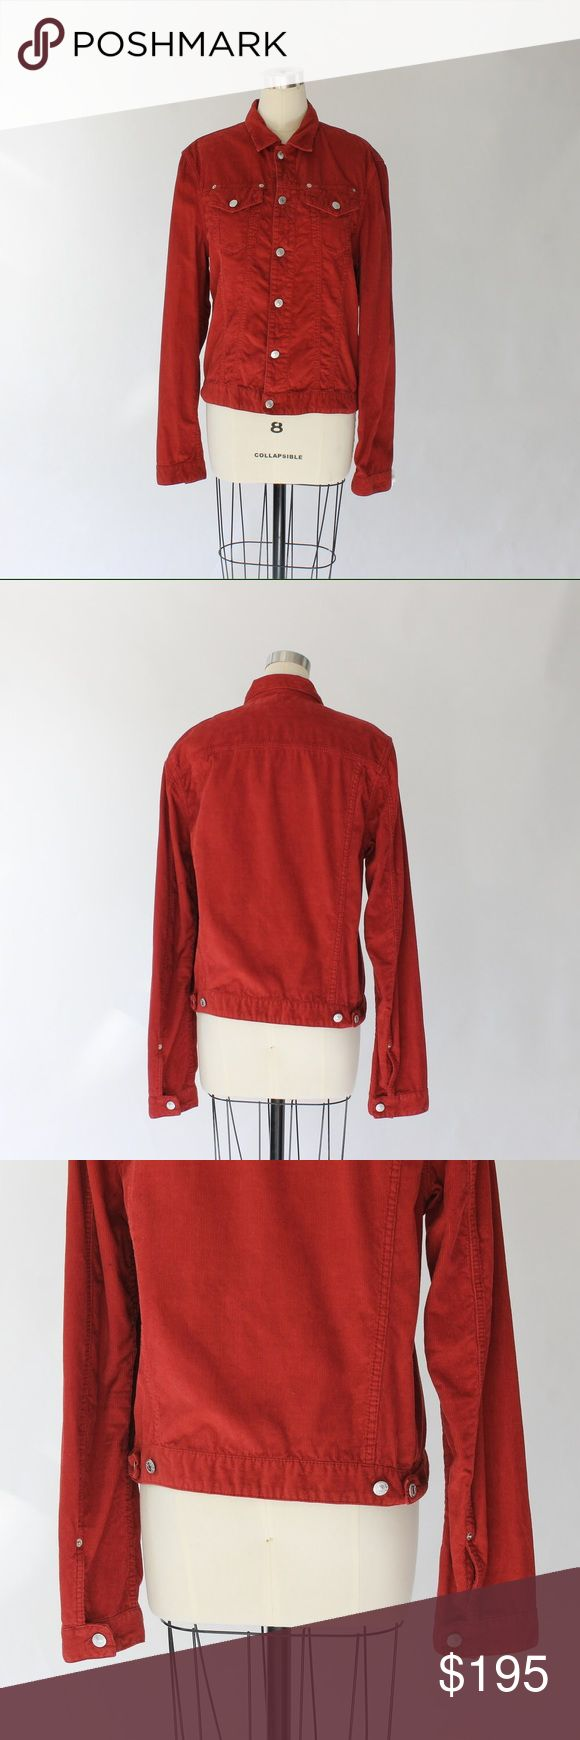 DSquared Red Corduroy Jacket DSquared red corduroy jacket has flap chest pockets, button cuffs, and button closures. Made in Italy. 100% Cotton. Excellent condition.  Size 50  US Size 14 DSQUARED Jackets & Coats